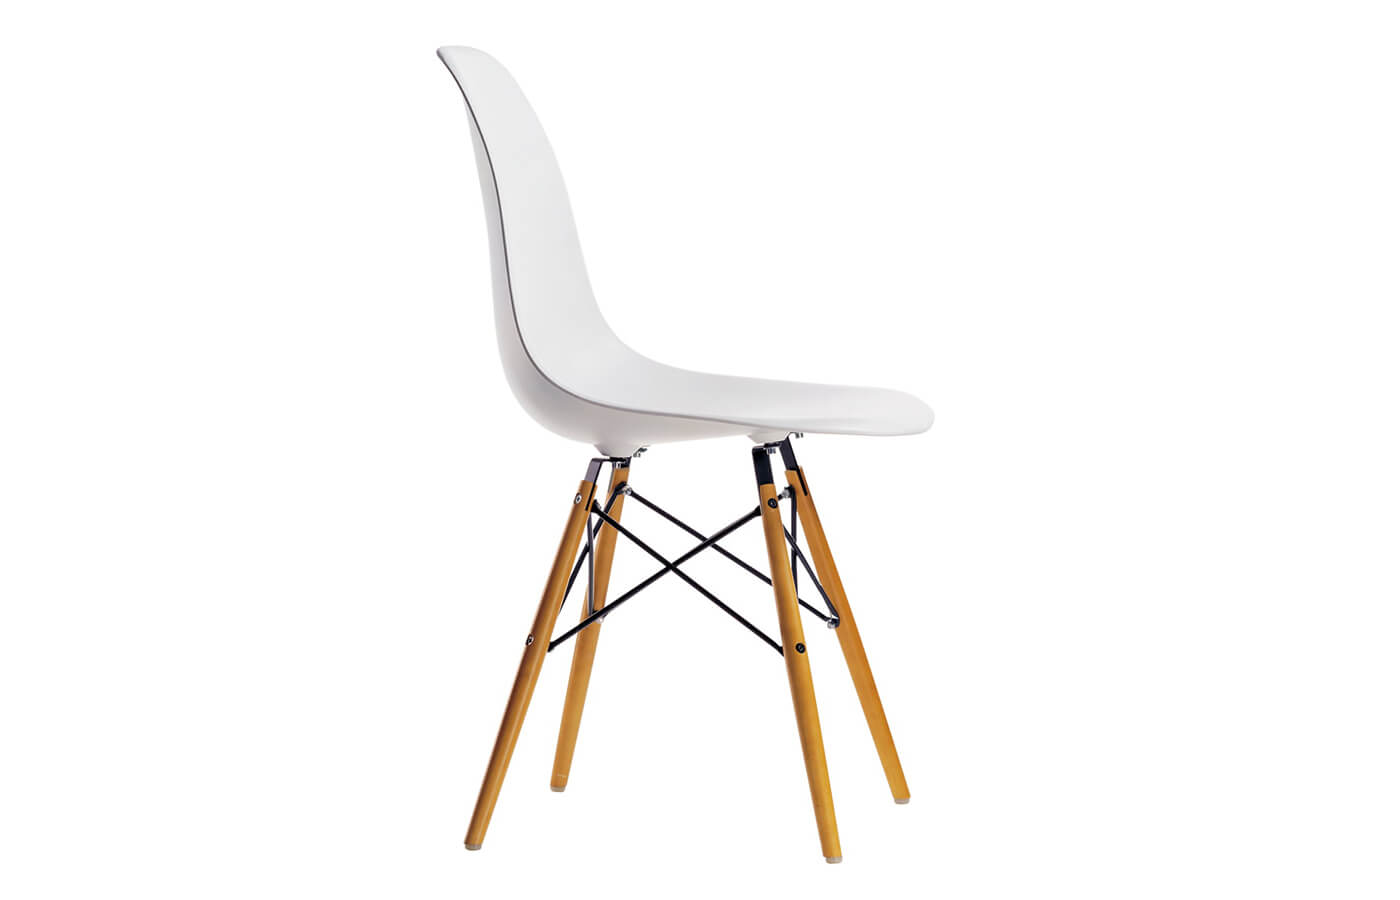 Plastic Side Chair o S-schell di Charles e Ray Eames